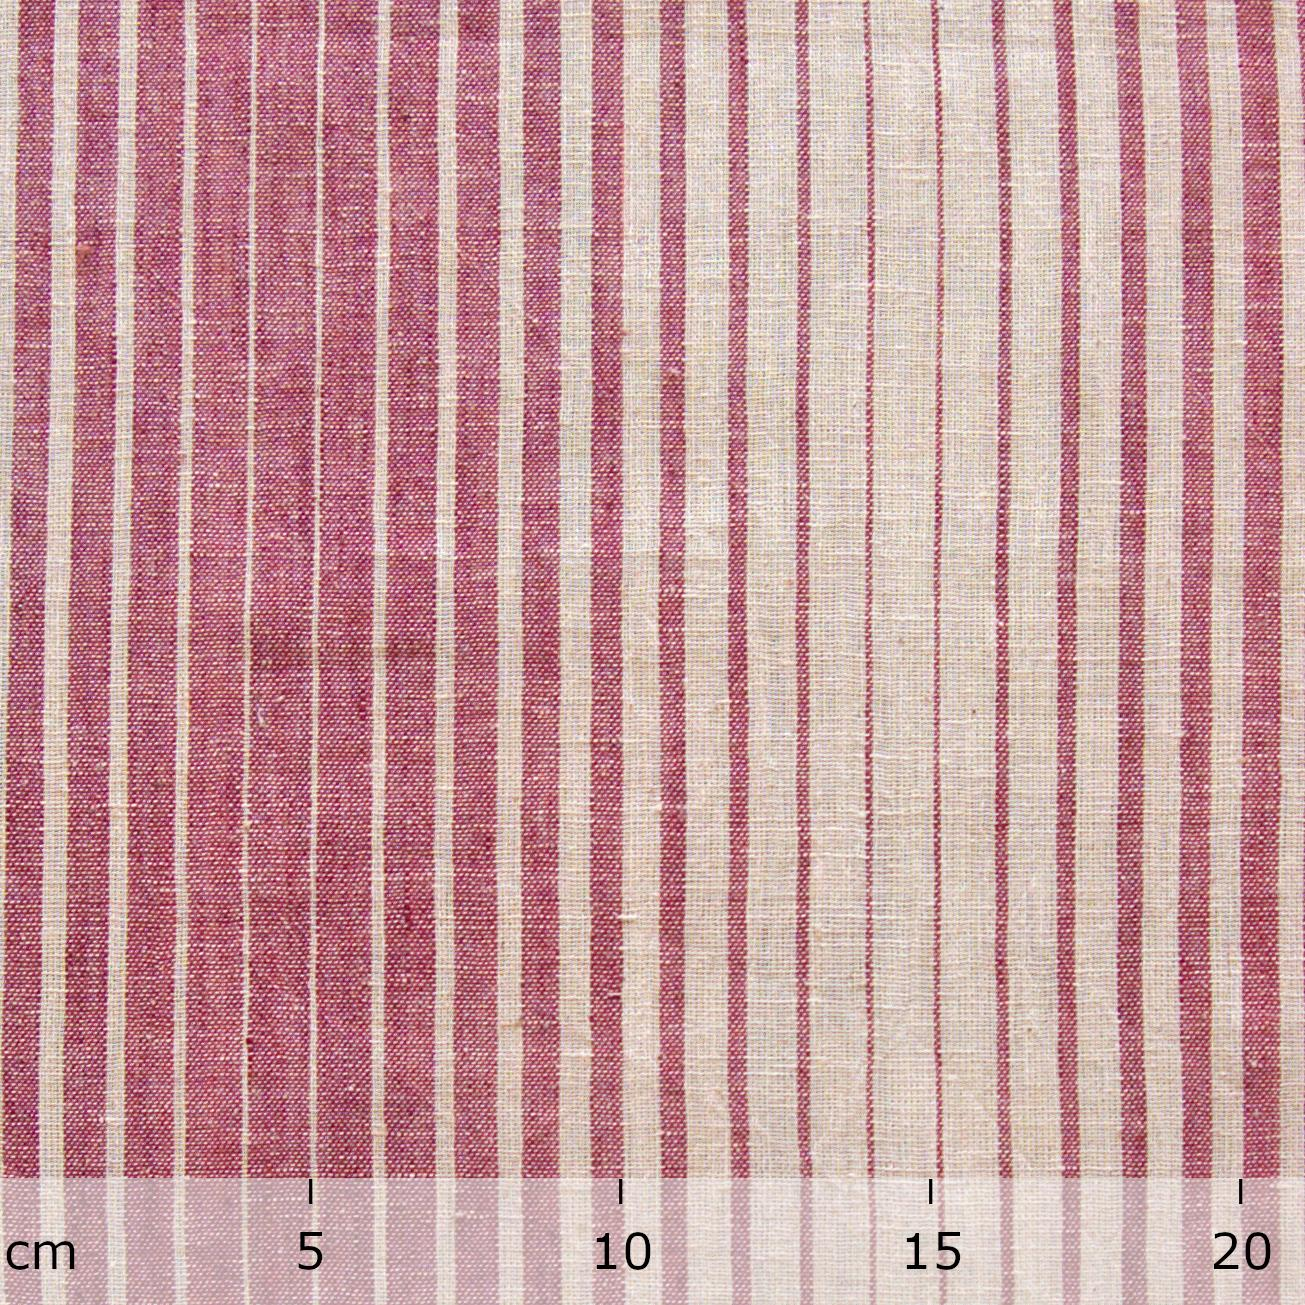 Organic Kala Cotton - Handloom Woven - Natural Dye - Red Aal Root - Fading Stripes - One By One - Ruler